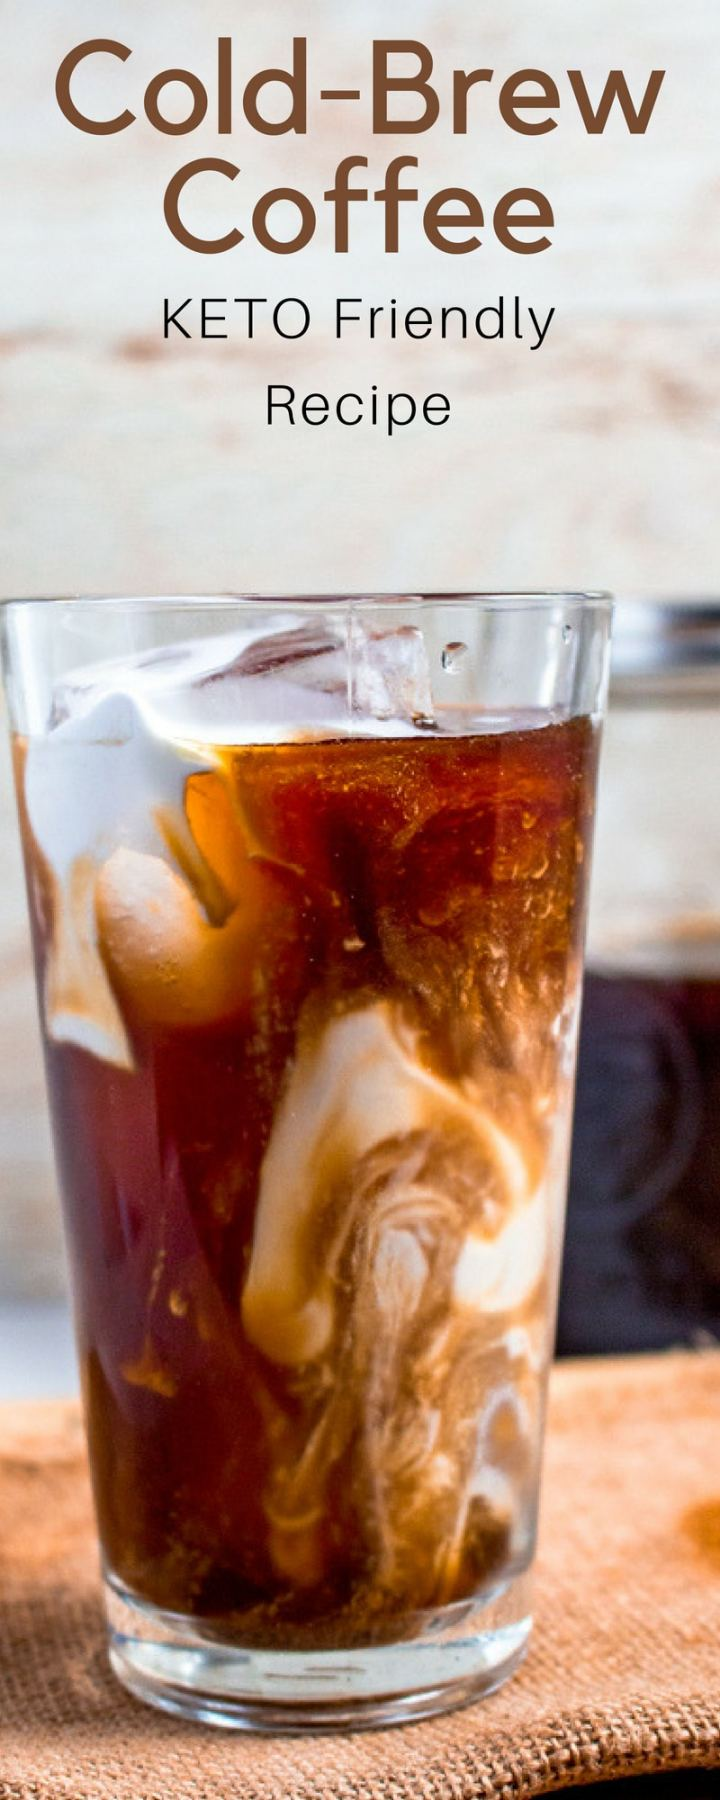 Cold Brew Coffee | This refreshing coffee is made using a classic cold brew technique and made to fit within your low-carb/Keto lifestyle. #Keto #KetoRecipe #coffee #coldbrew #easyrecipe #ketorecipes